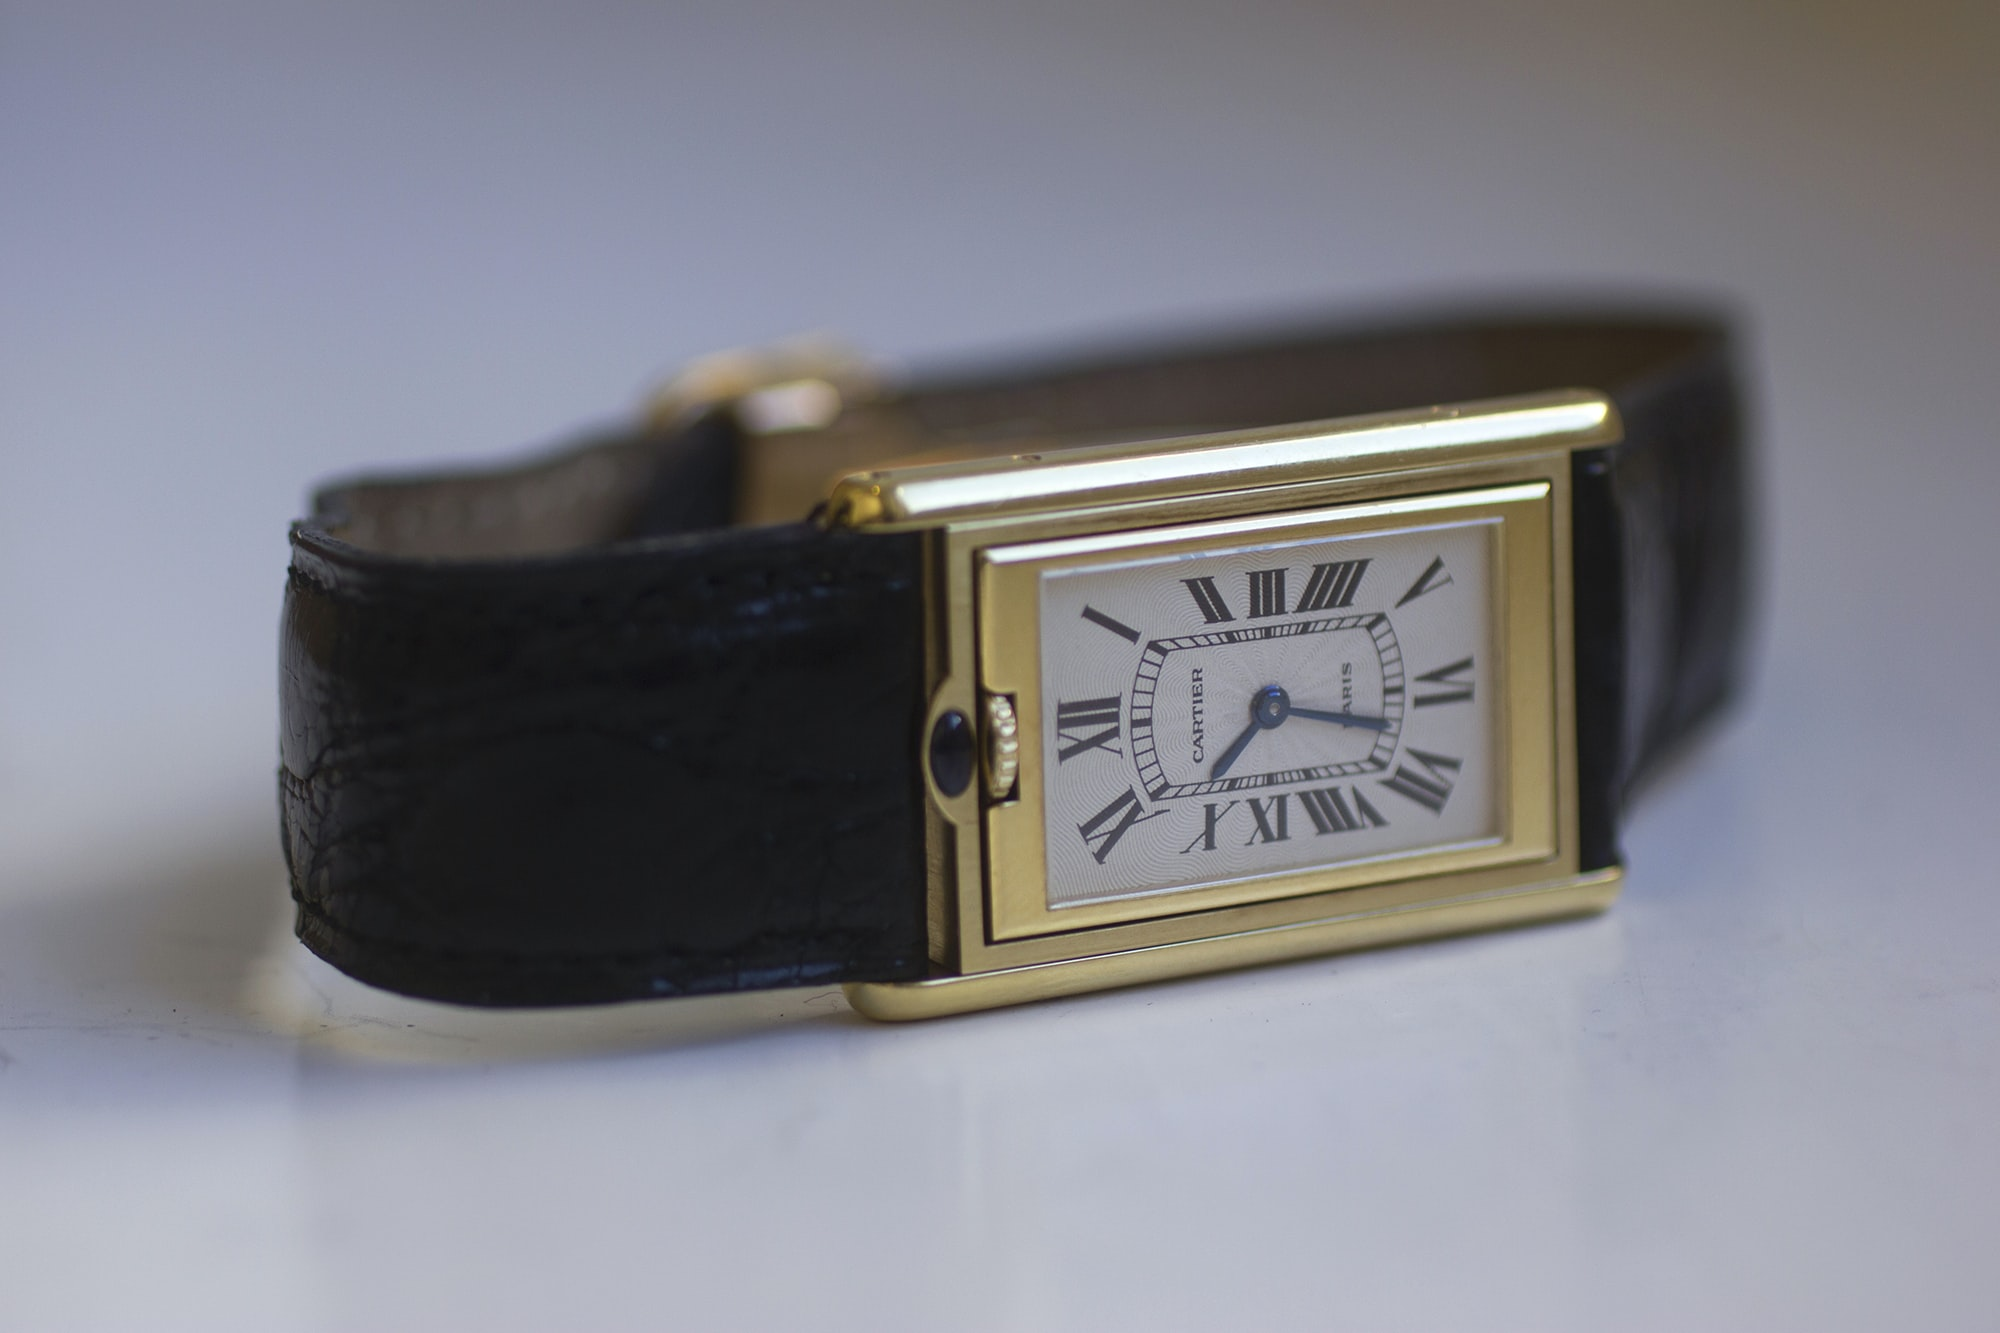 Five Reasons The Cartier Tank Basculante Isn't 'The Other' Reverso Five Reasons The Cartier Tank Basculante Isn't 'The Other' Reverso IMG 7507